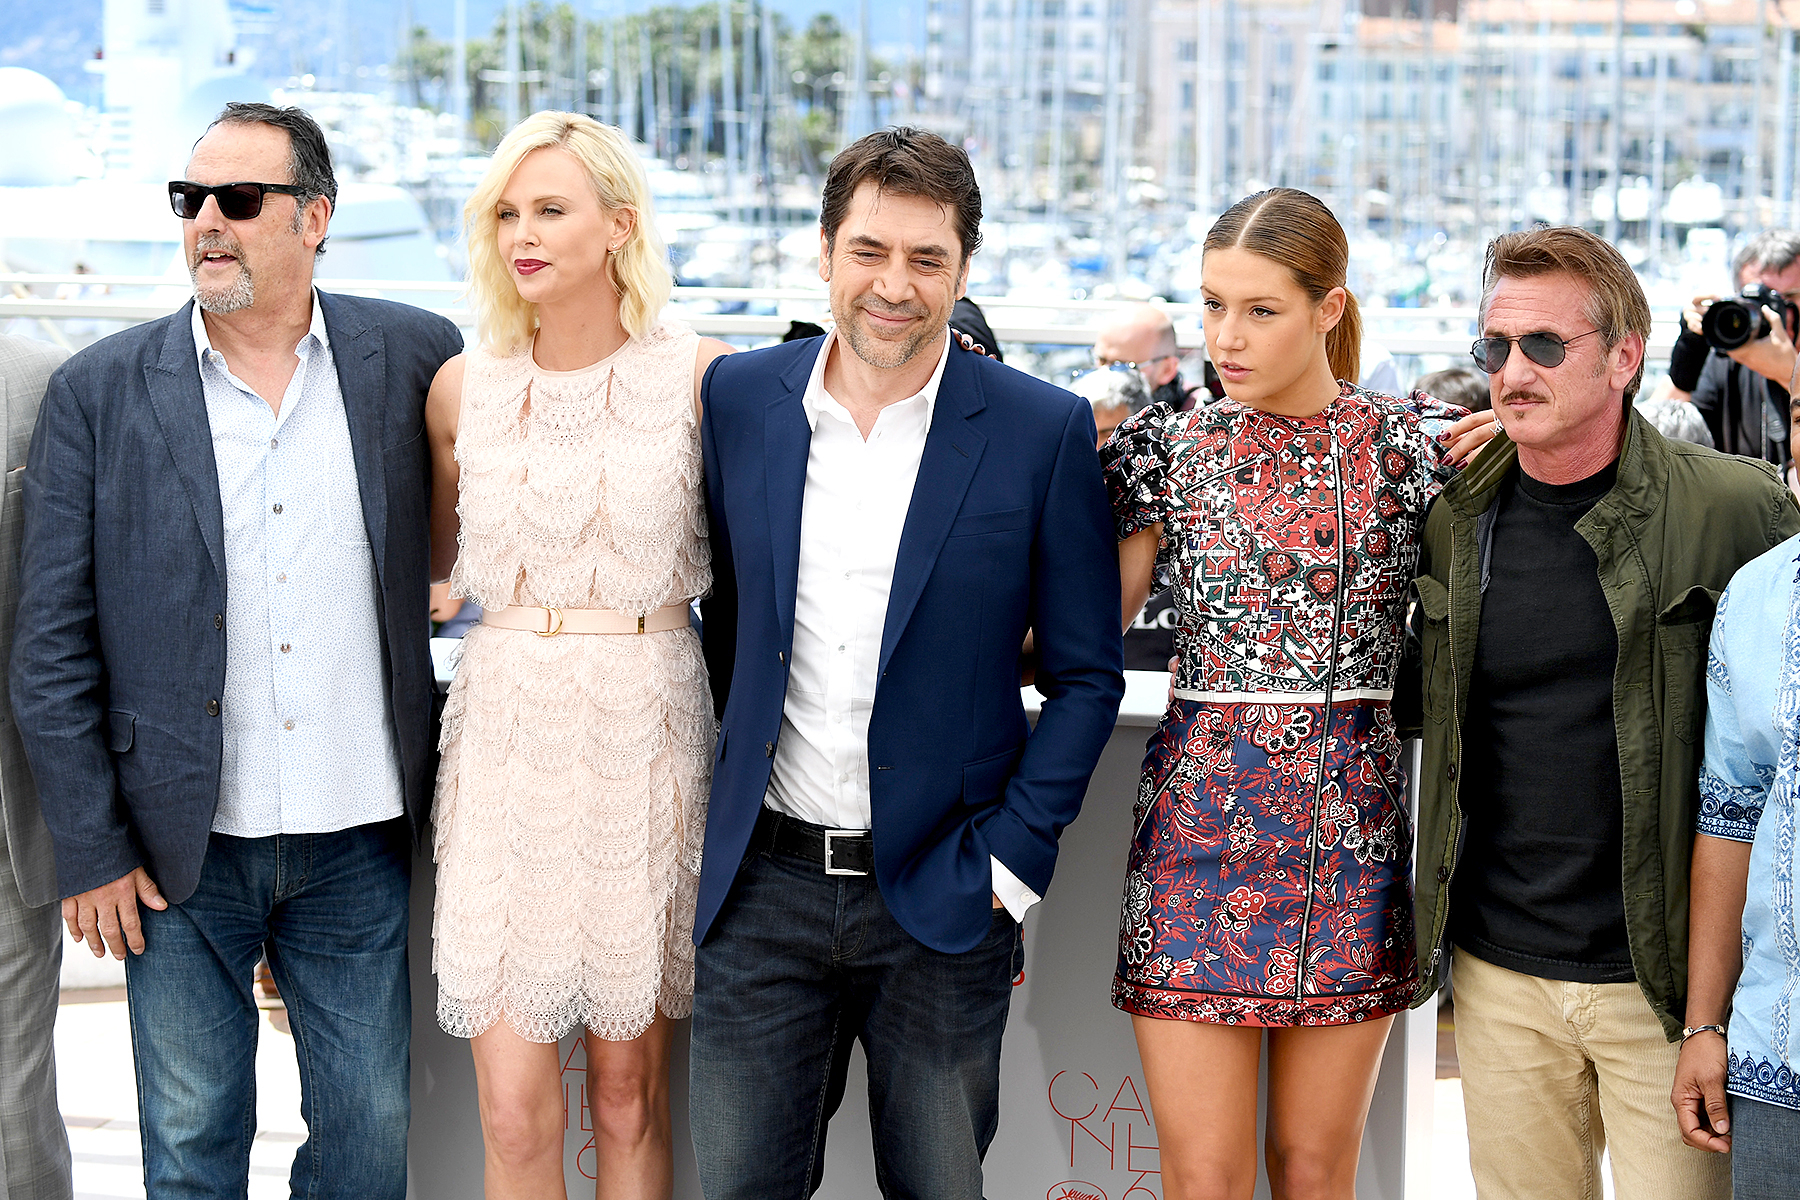 Jean Reno, Charlize Theron, Javier Bardem, Adele Exarchopoulos and Sean Penn (from left) attend 'The Last Face' Photocall during The 69th Annual Cannes Film Festival on May 20, 2016 in Cannes.